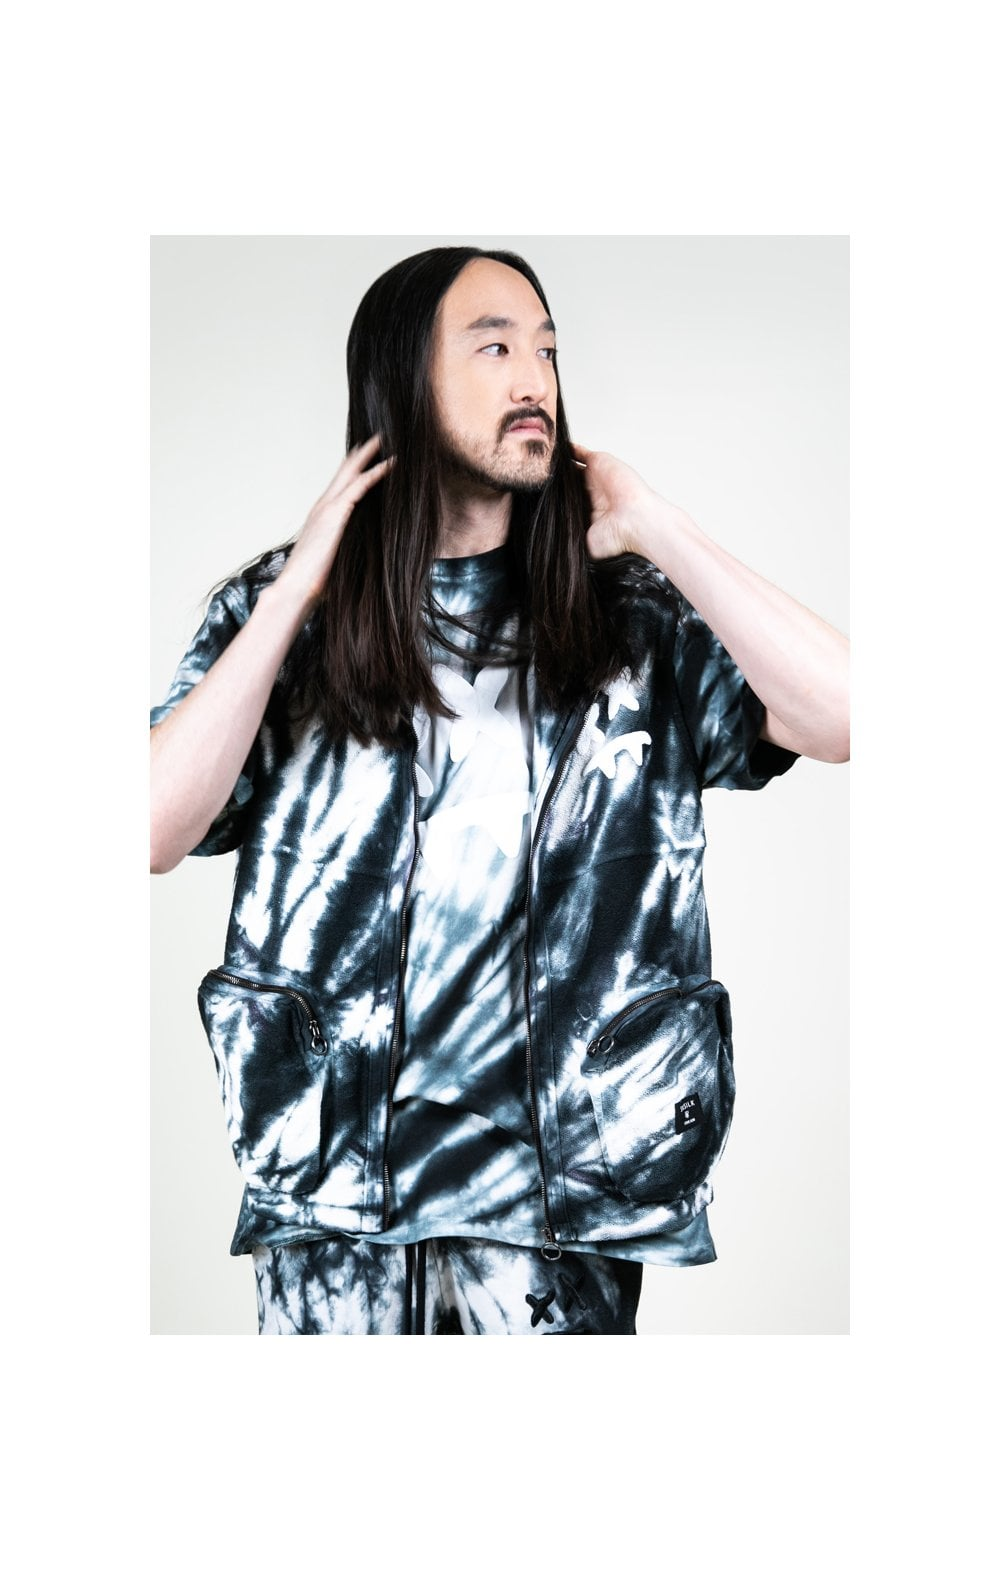 Load image into Gallery viewer, SikSilk X Steve Aoki Utility Vest - Black & White Ink Tie Dye (4)